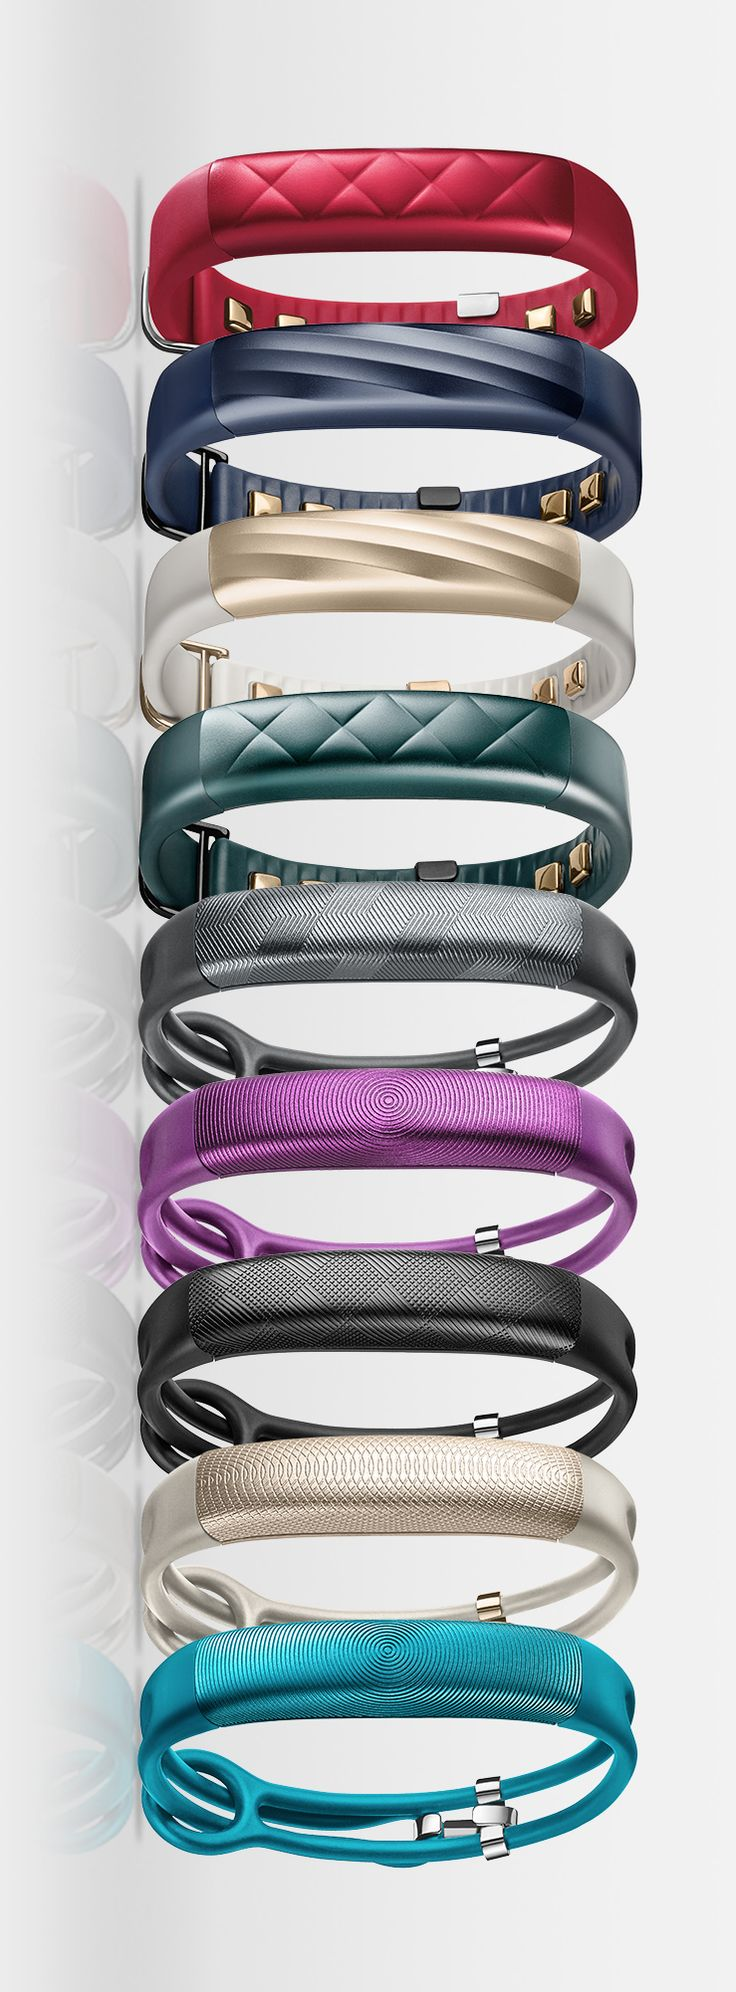 Jawbone's new updates should give wearers a more complete picture of their day-to-day patterns and overall health.